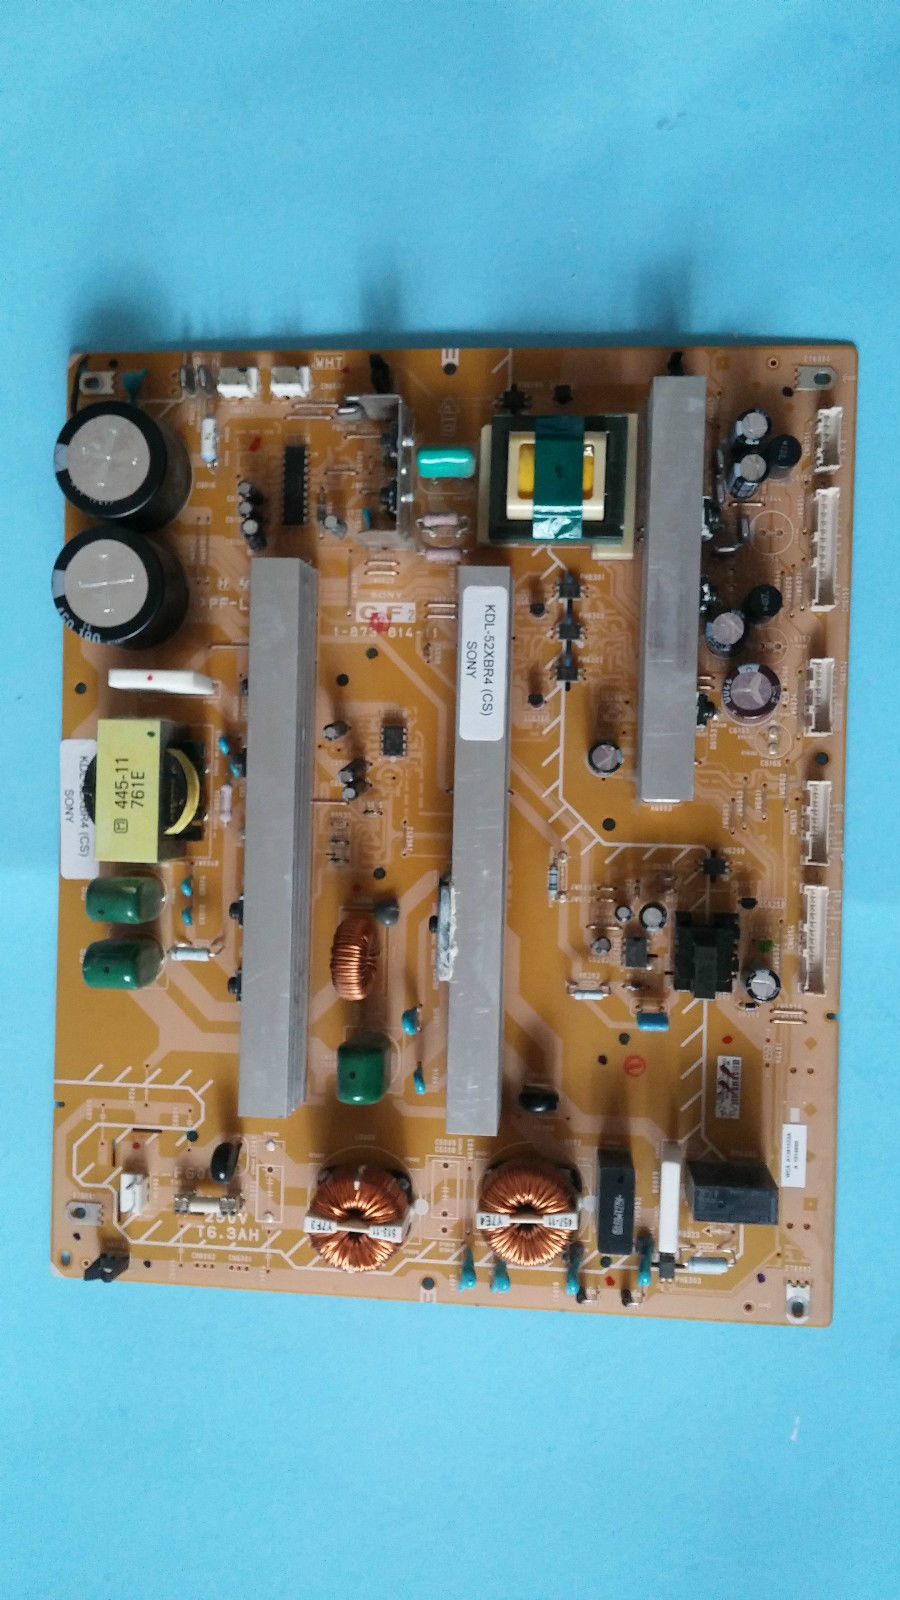 1-873-814-11 A1361550A KDL-52XBR4 SONY power supply board